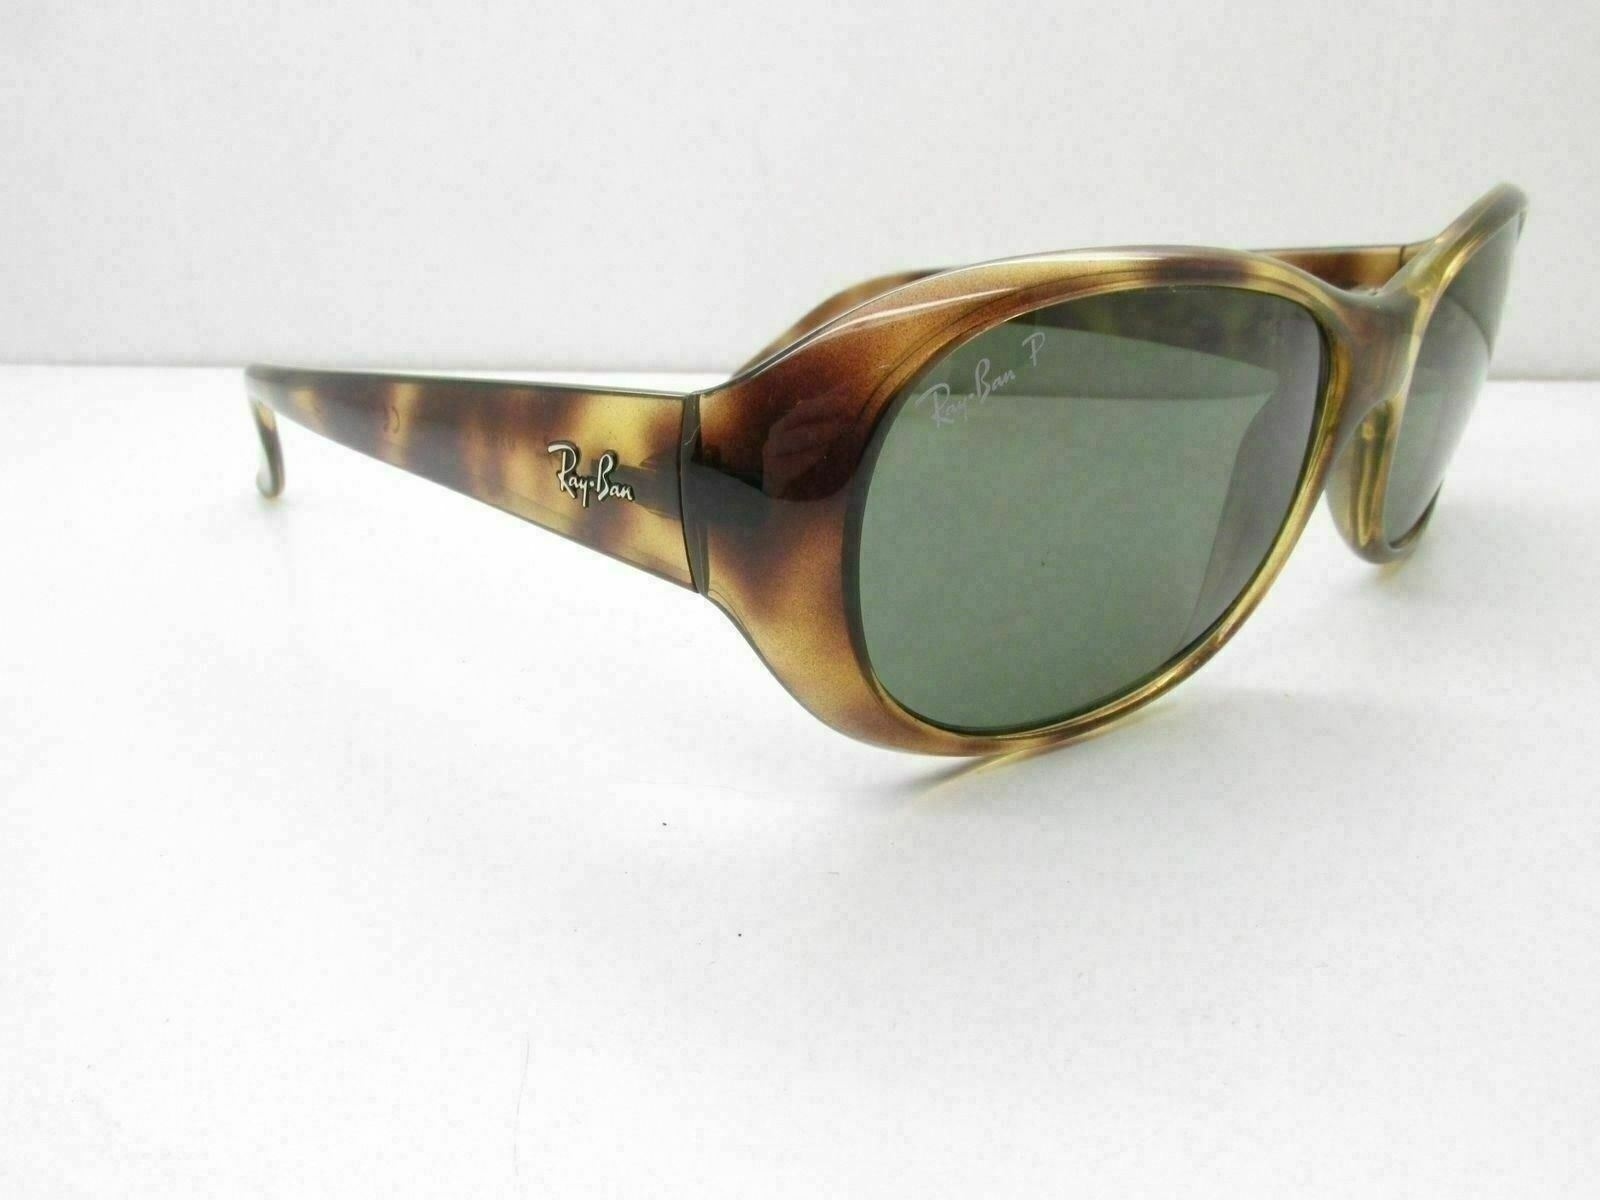 438160a789 UPC 805289079453 product image for Ray Ban Polarized Rb 4061 Prescription  Unisex Brown Sunglasses Black Case ...